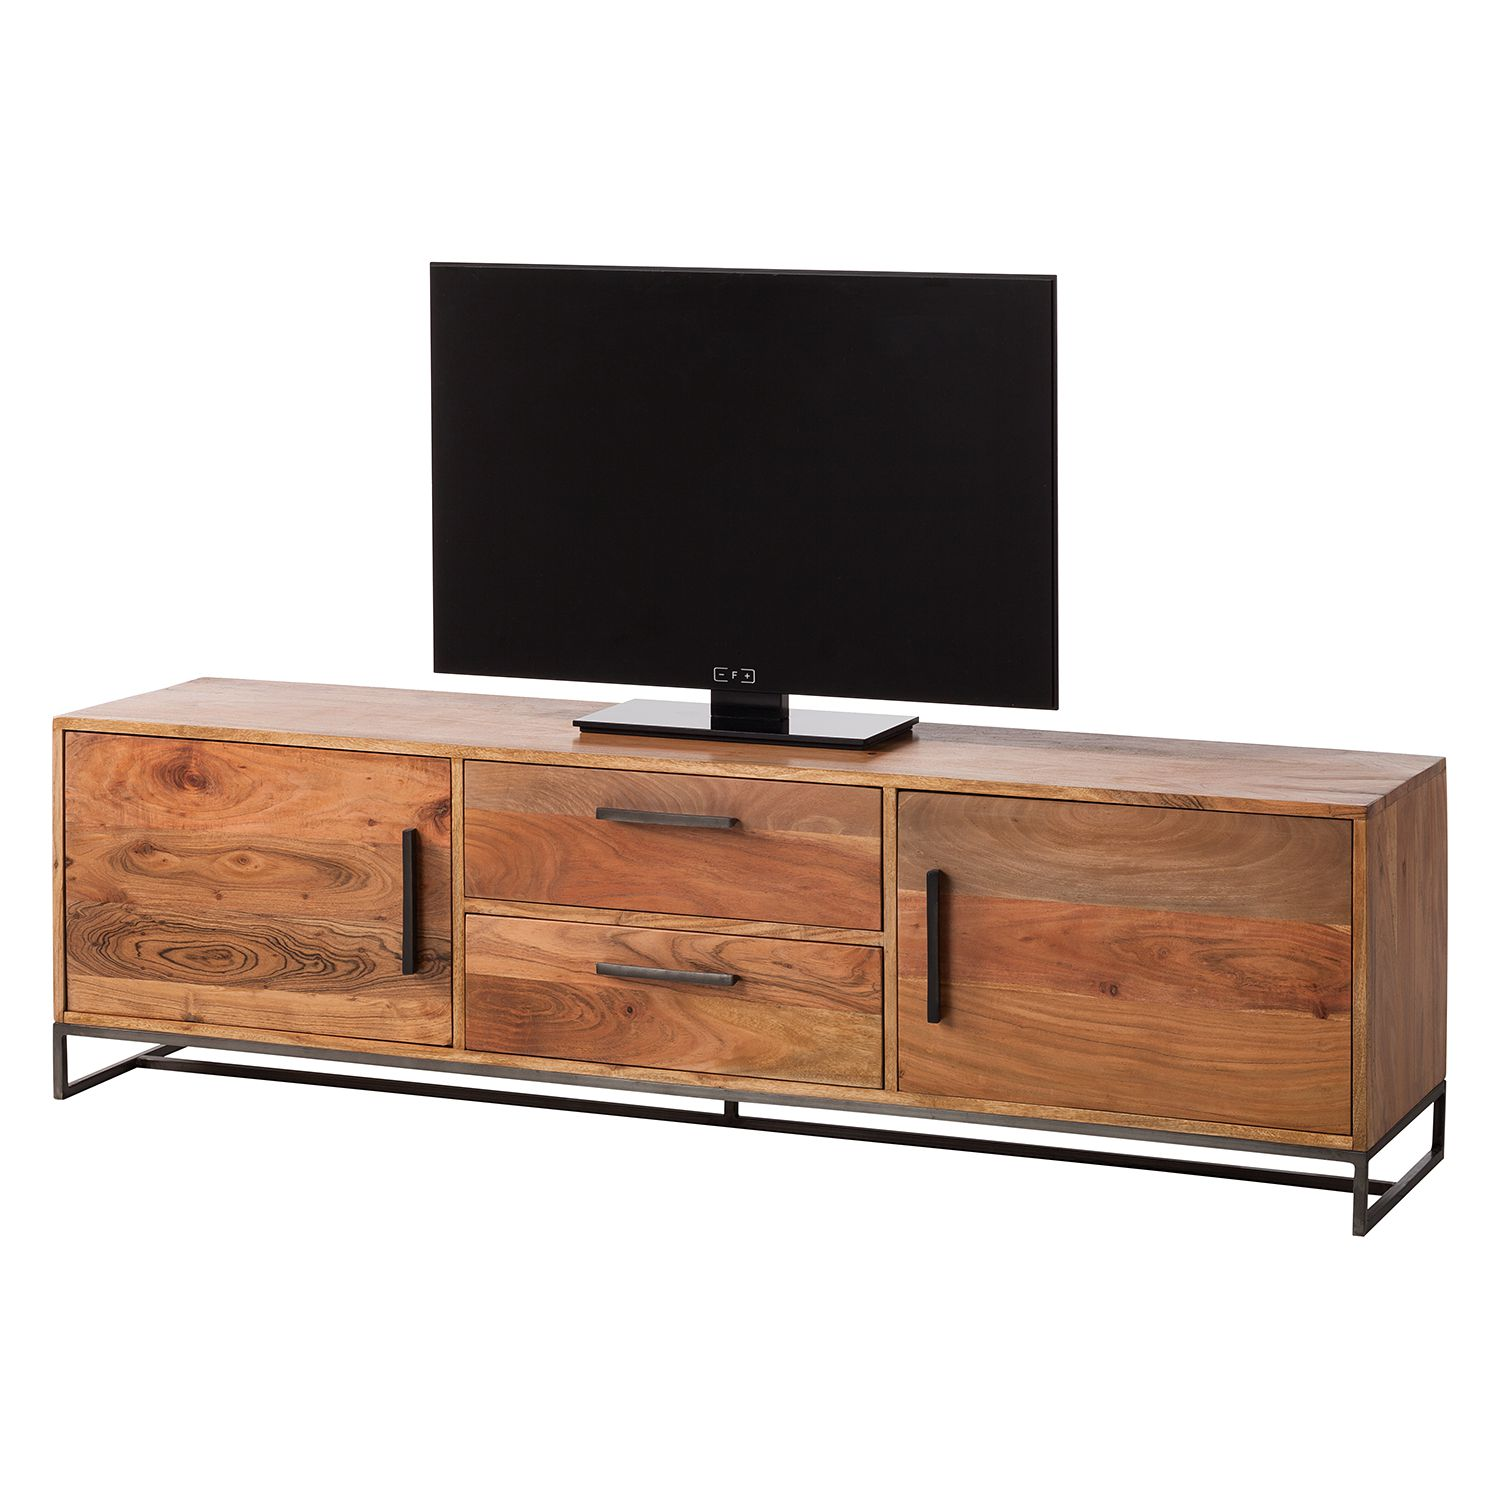 Meuble TV Woodson III - Acacia massif / Fer - Acacia Marron clair, ars manufacti